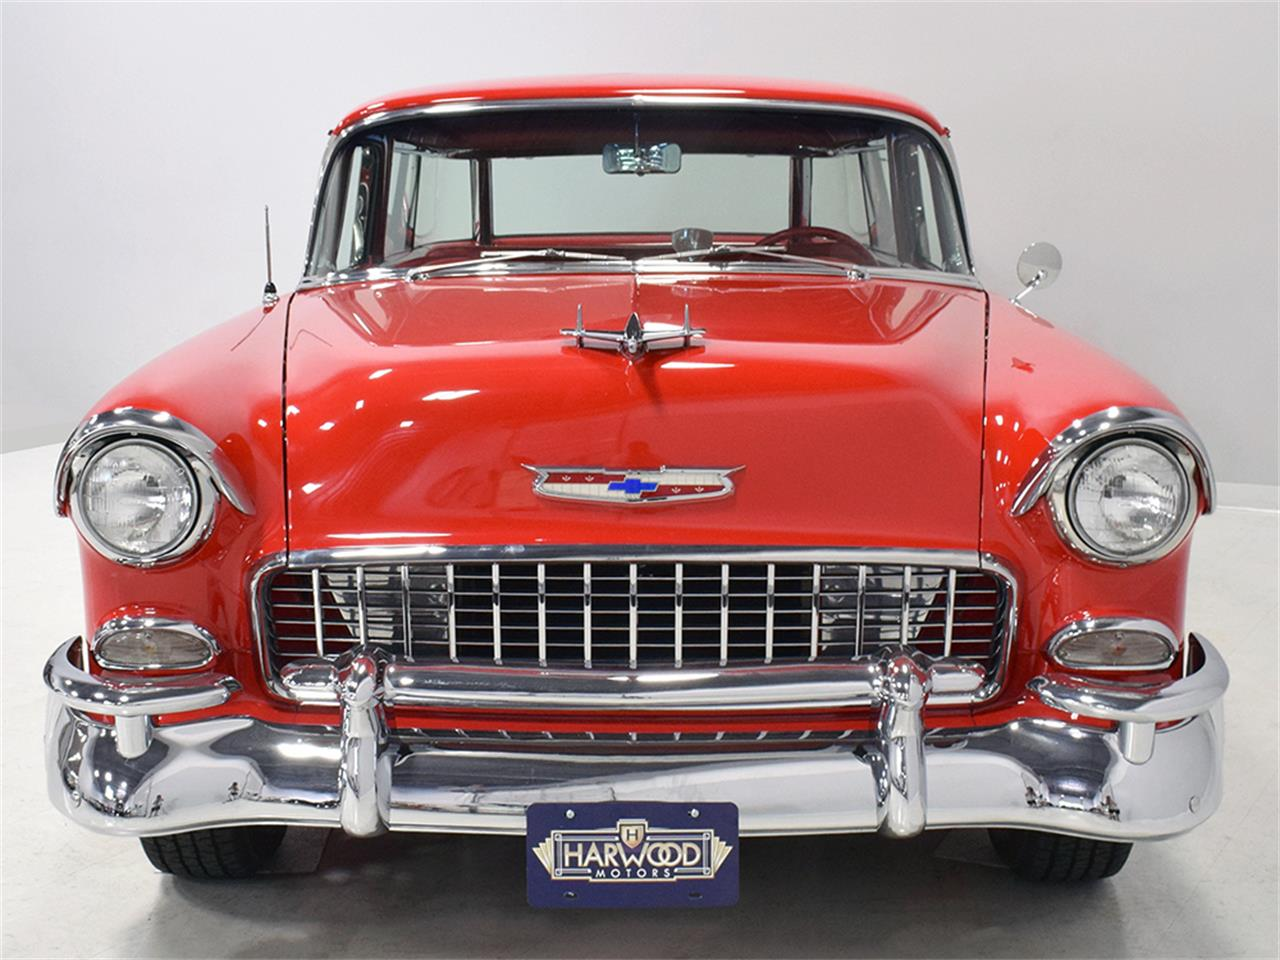 Large Picture of '55 Chevrolet Nomad - $69,900.00 Offered by Harwood Motors, LTD. - O8YP